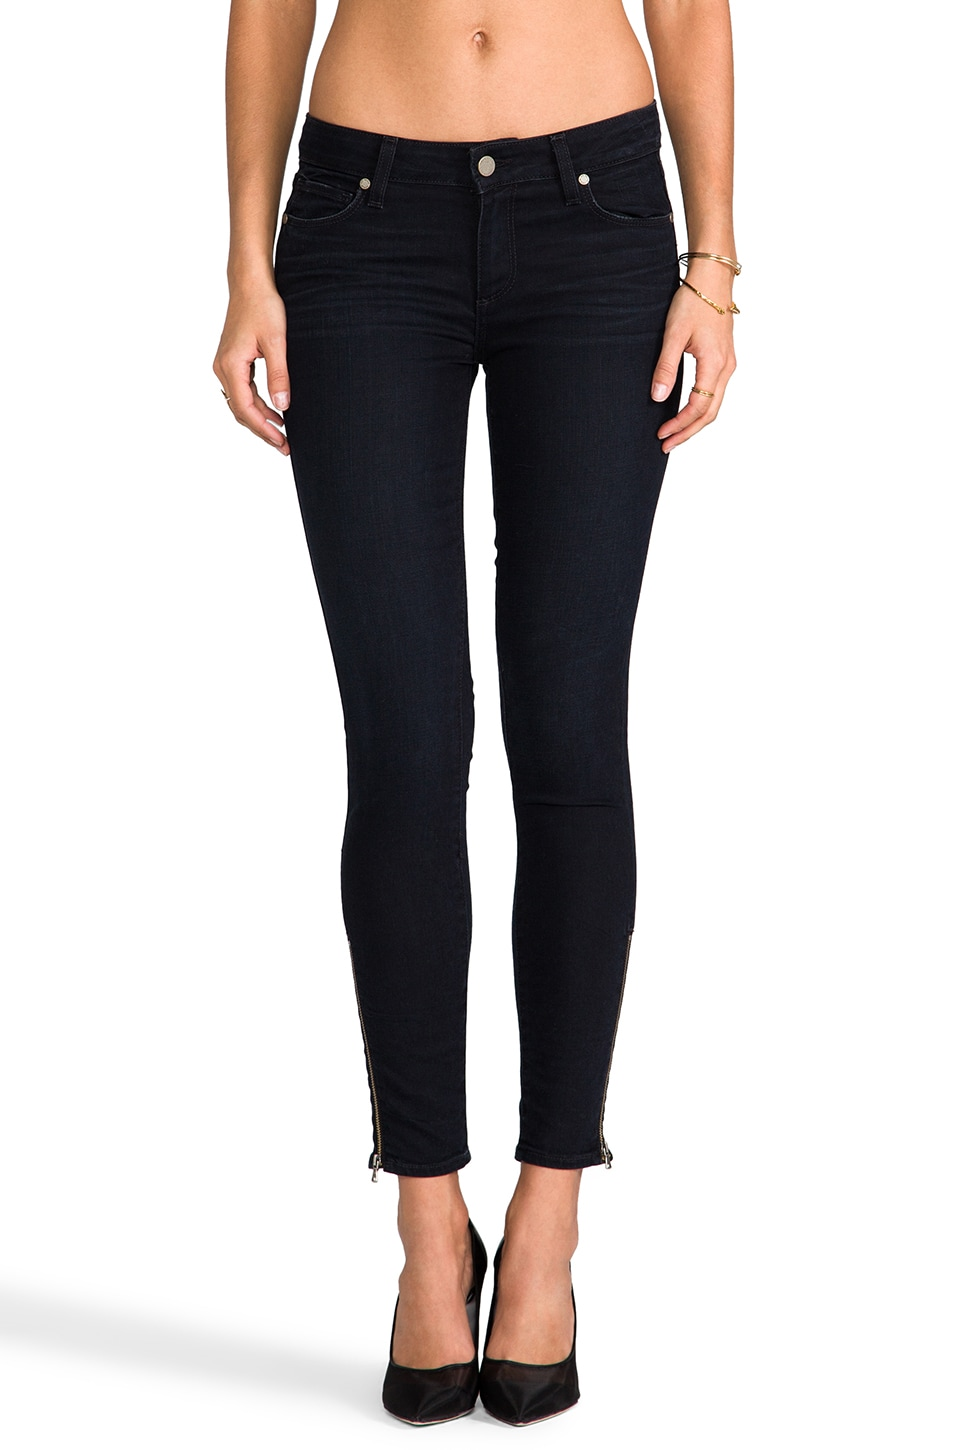 PAIGE Denim Verdugo Ankle Zip in Supernova